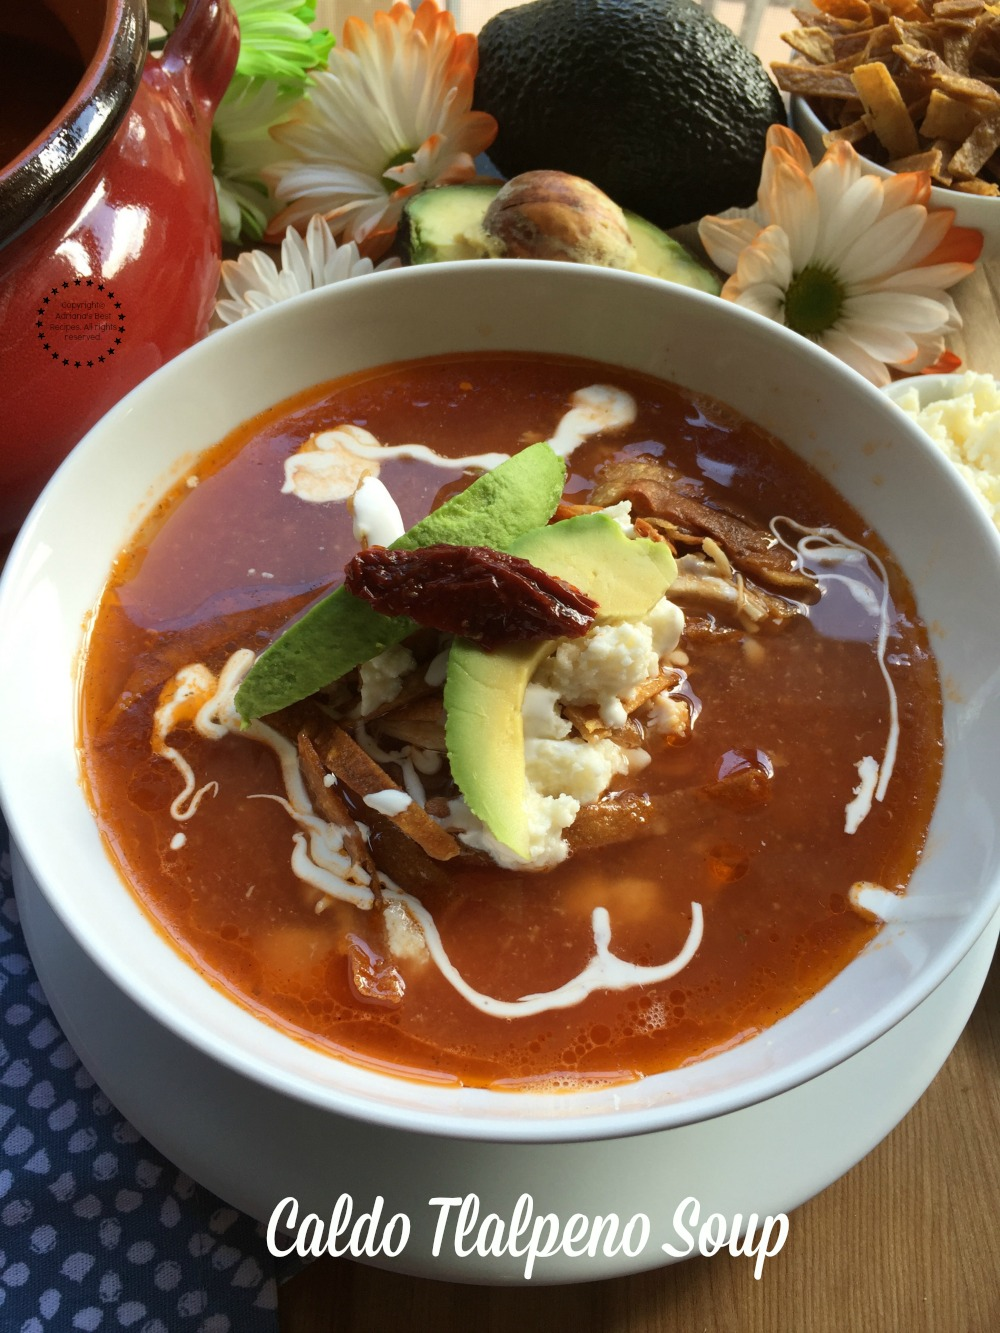 Caldo Tlalpeno Soup a comforting option for a cold day